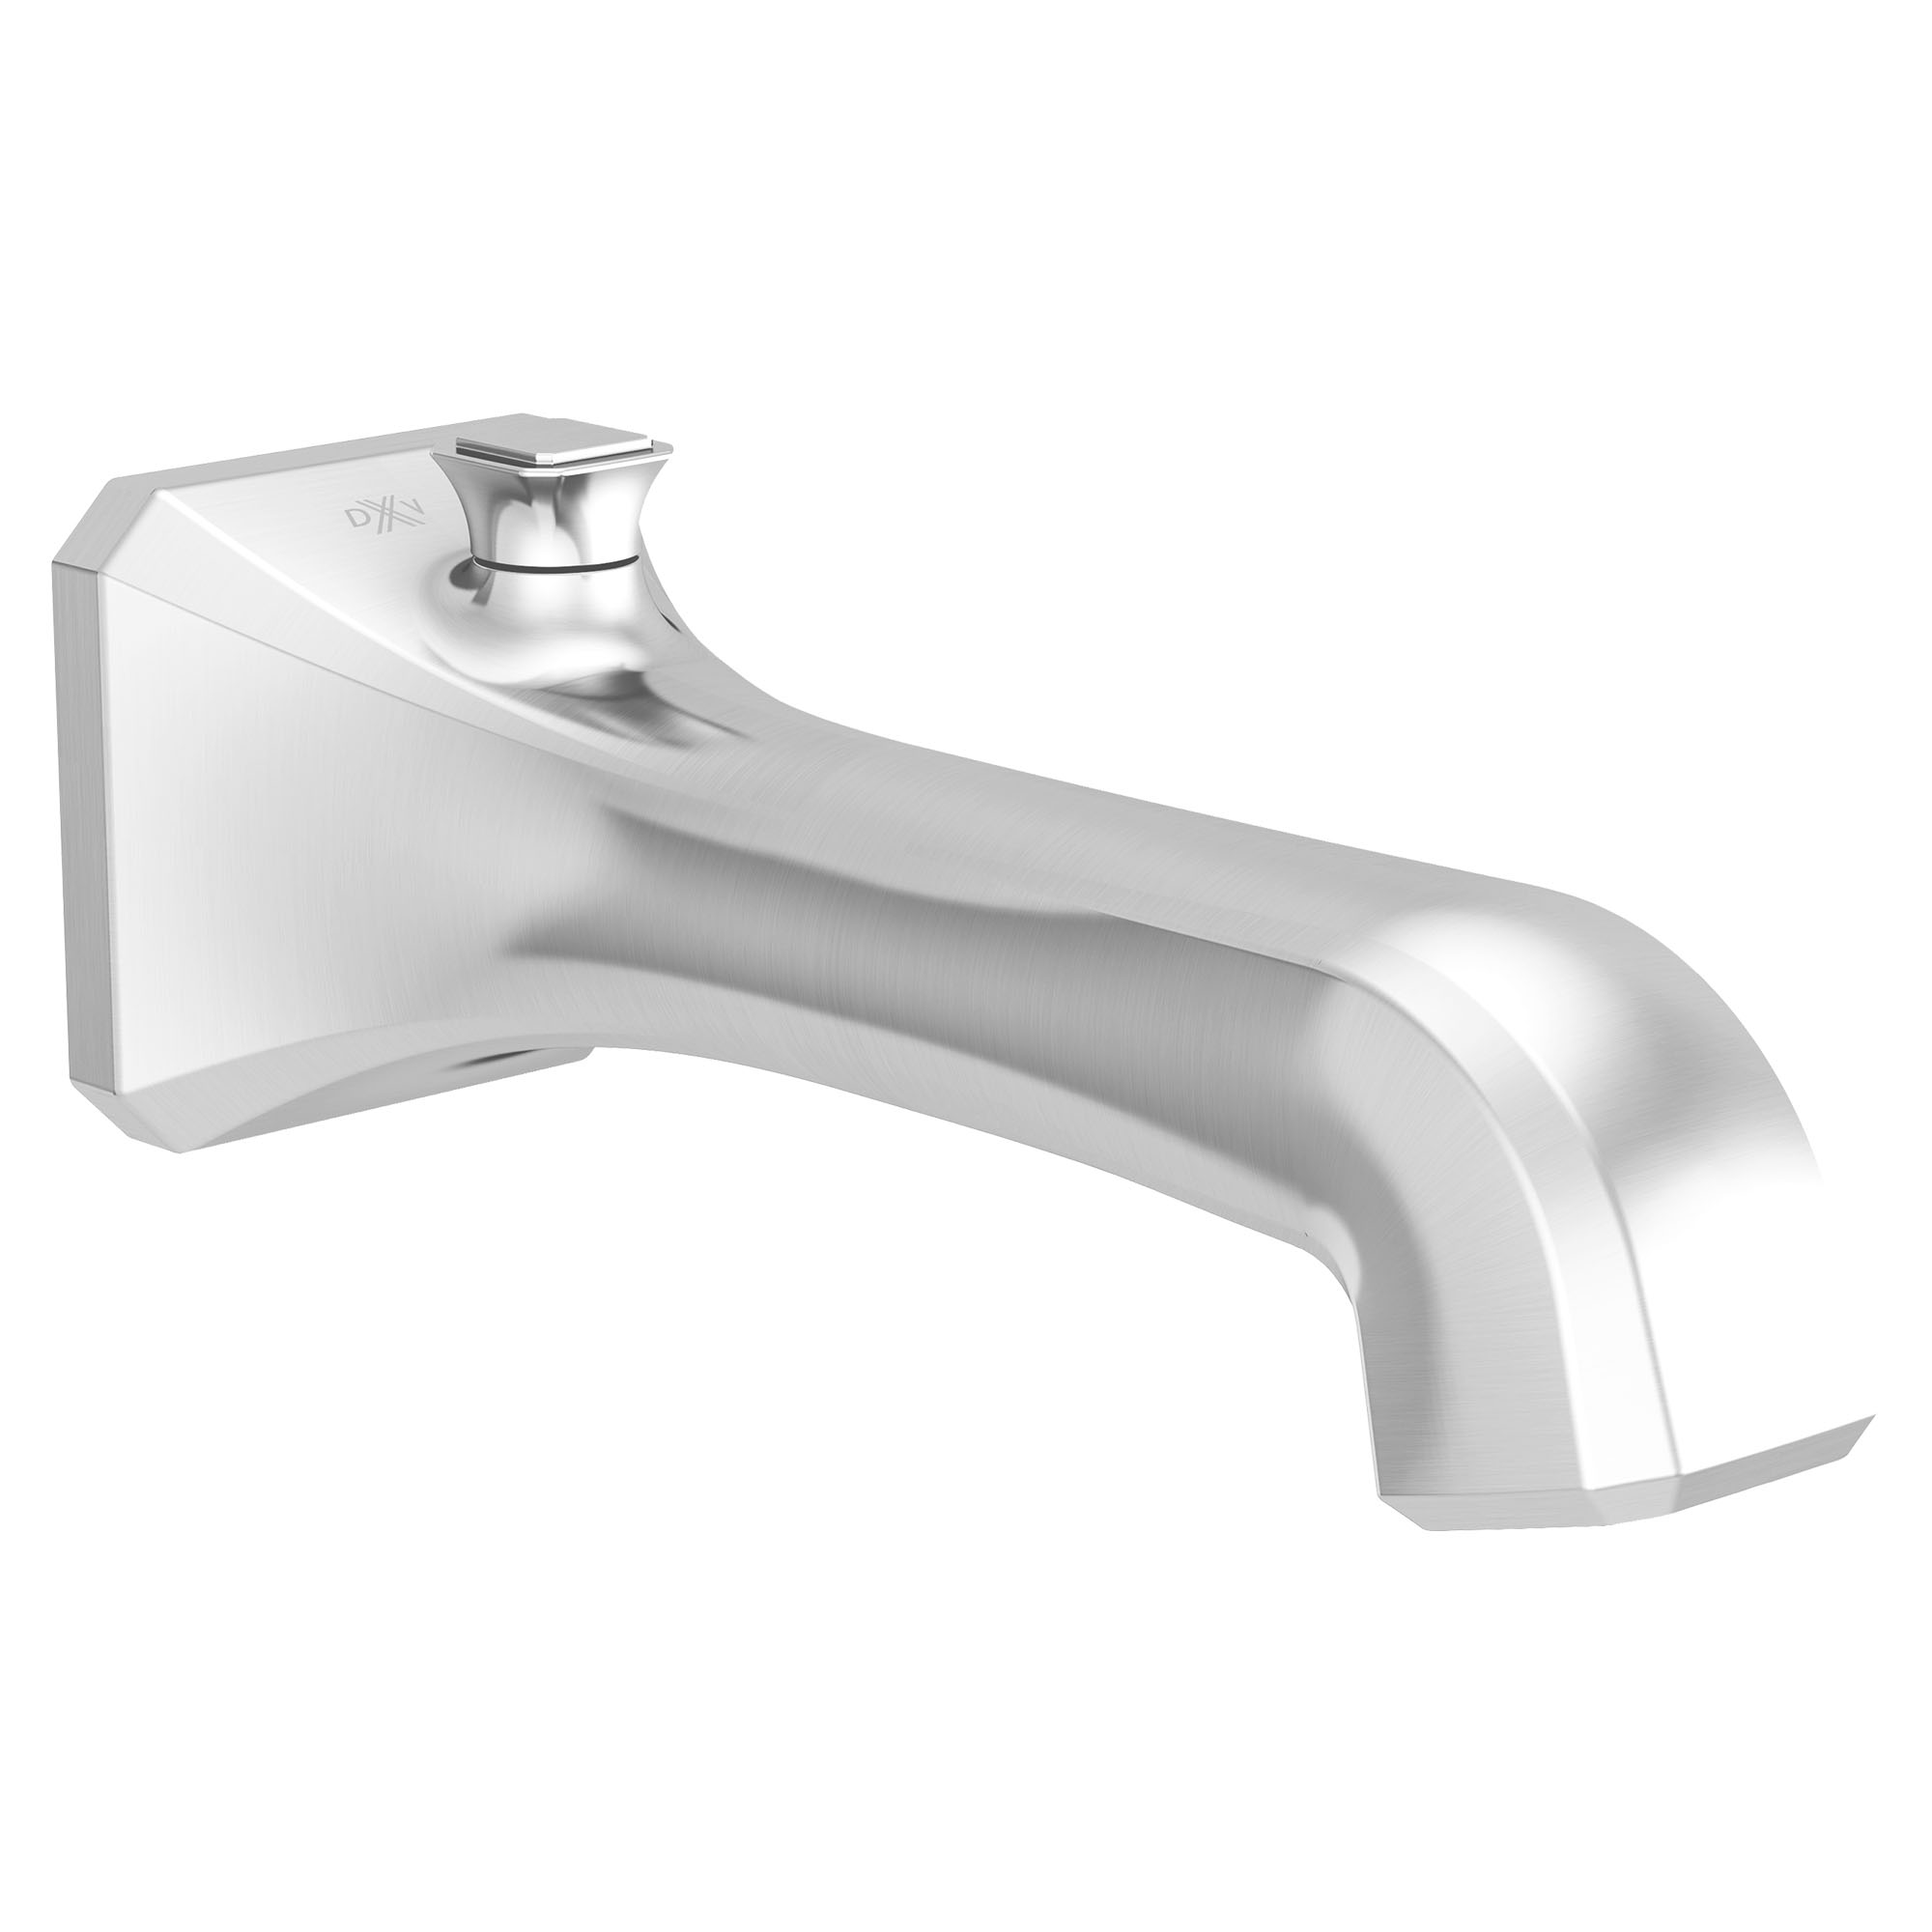 Belshire Pull-Up Diverter Tub Spout